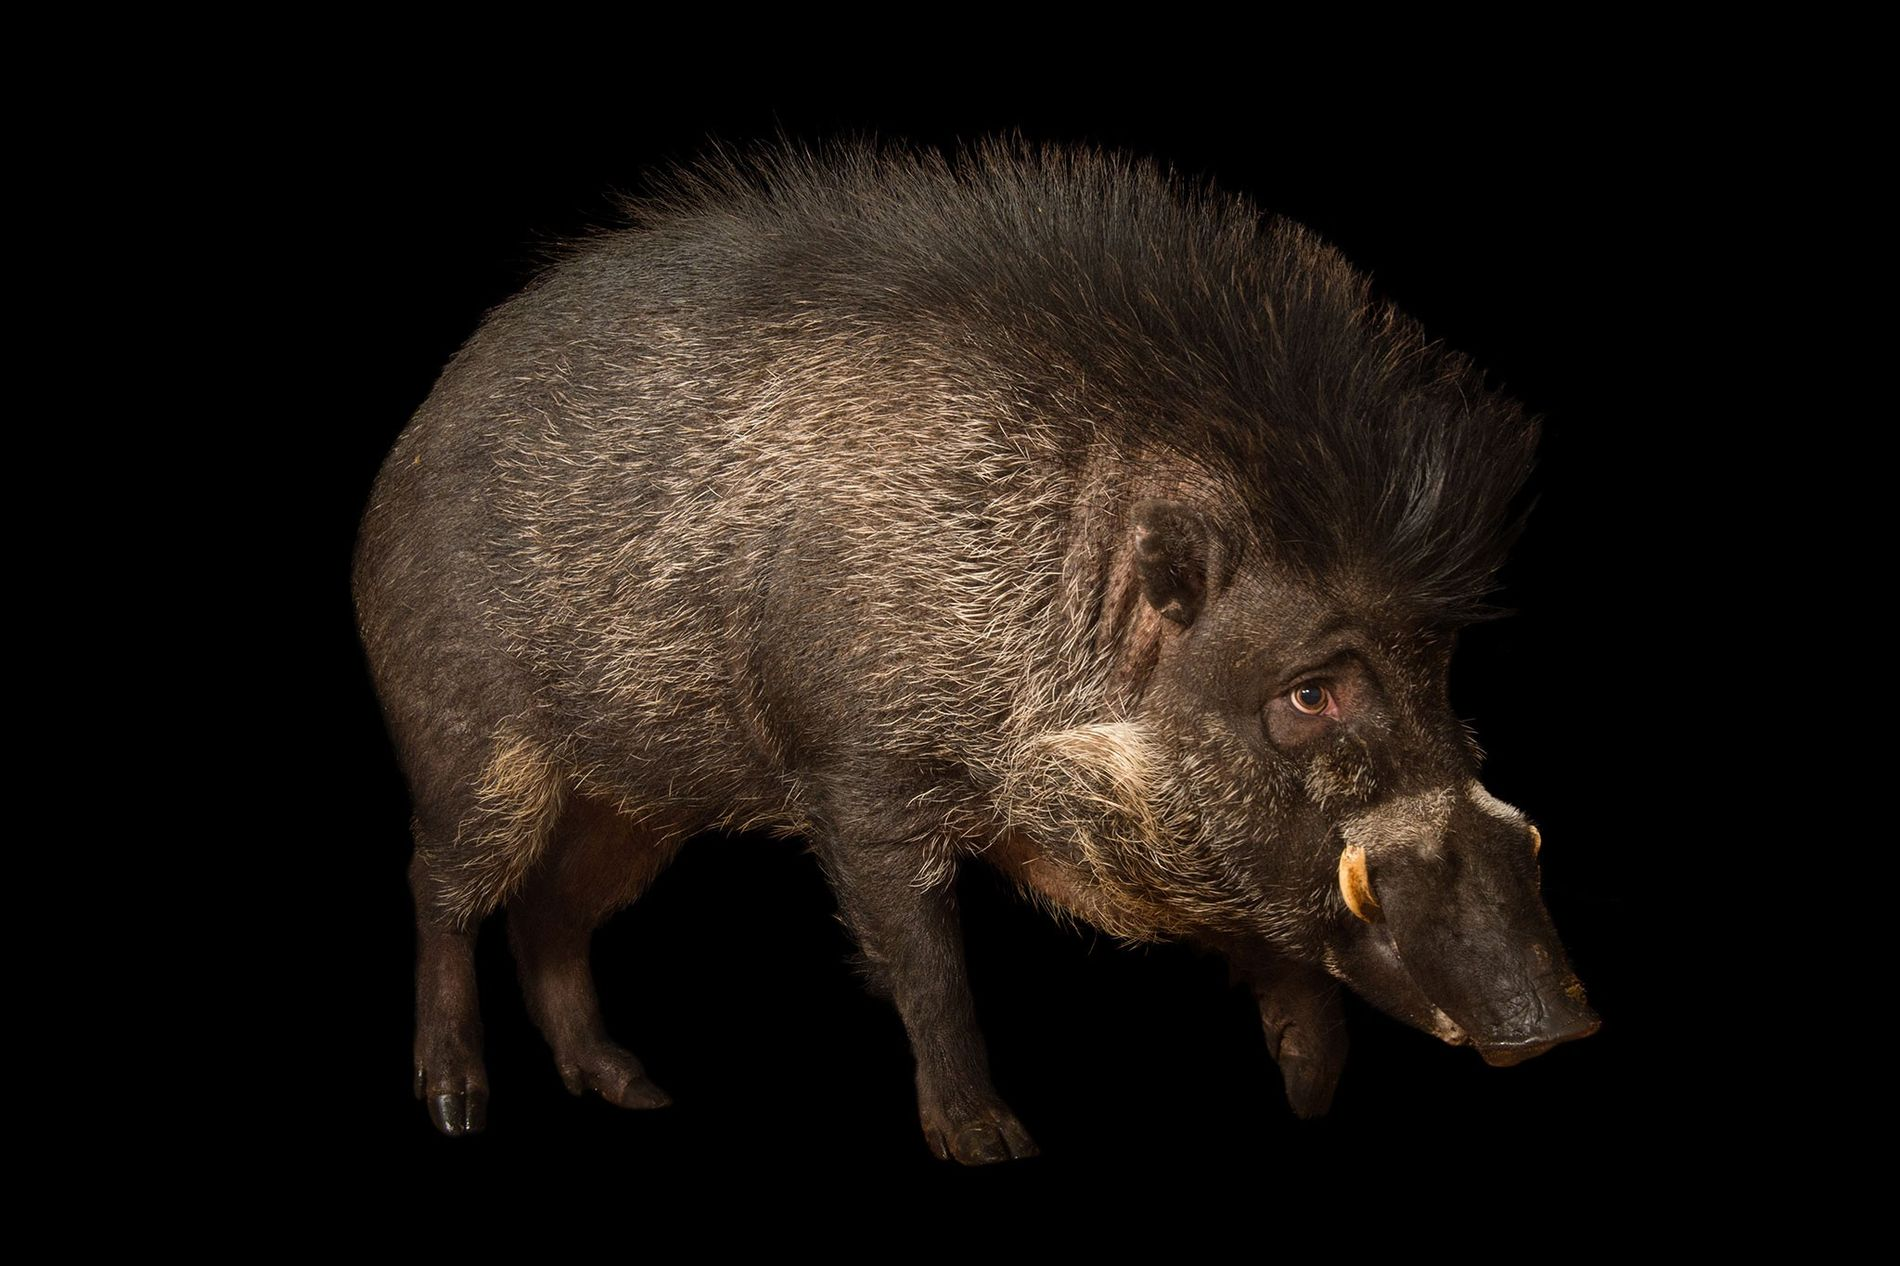 Only about 300 Visayan warty pigs exist in captivity (pictured, an animal at the Minnesota Zoo). ...